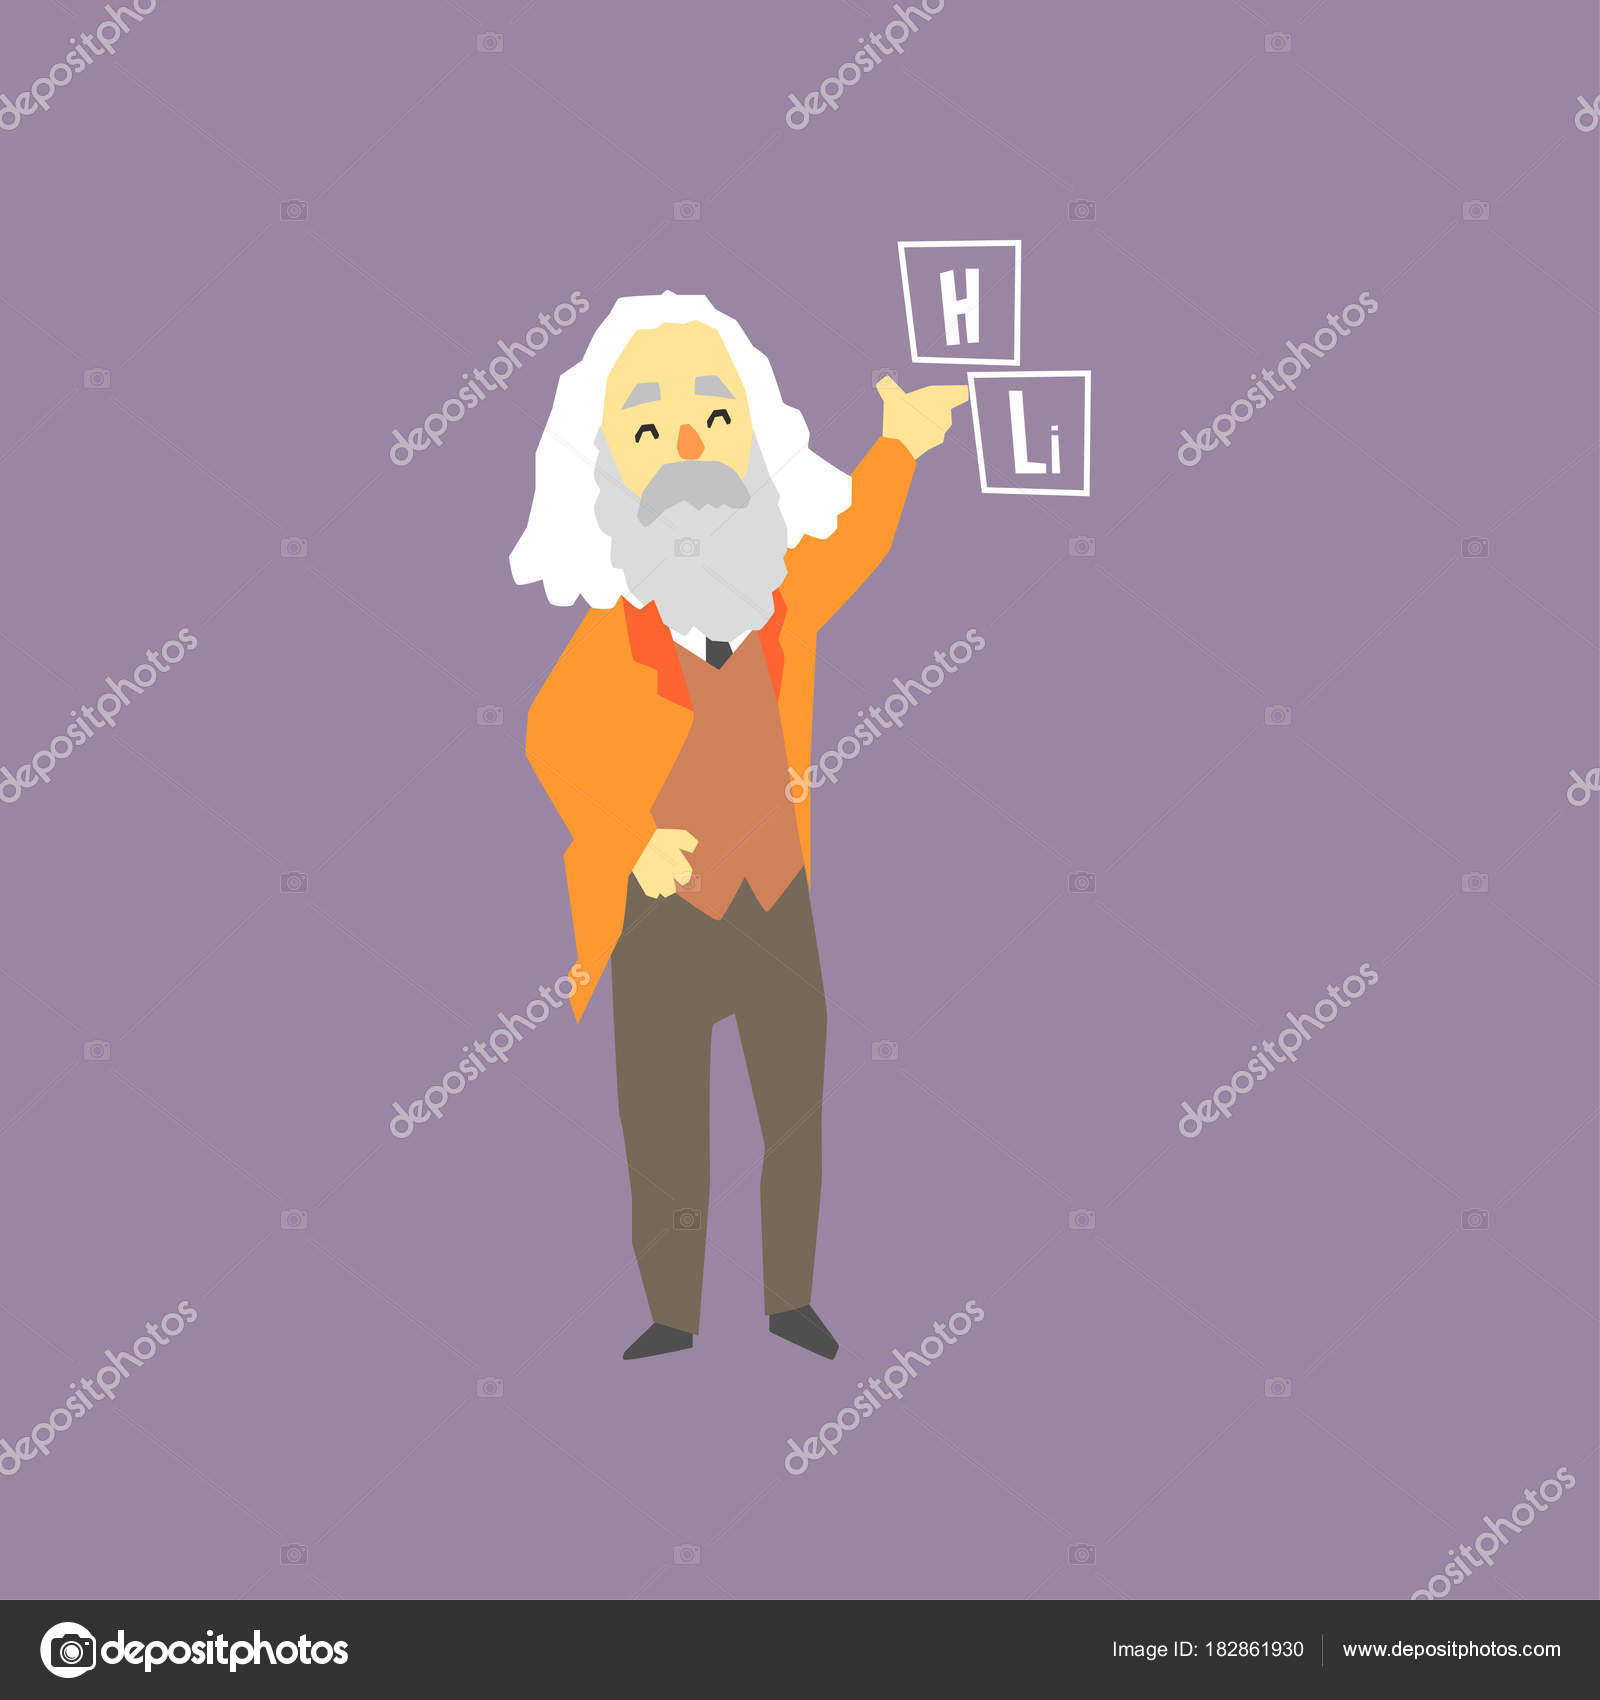 Famous russian chemist dmitri mendeleev inventor of the periodic inventor of the periodic table of elements smiling gray haired man character with beard cartoon flat vector illustration isolated on purple background urtaz Image collections